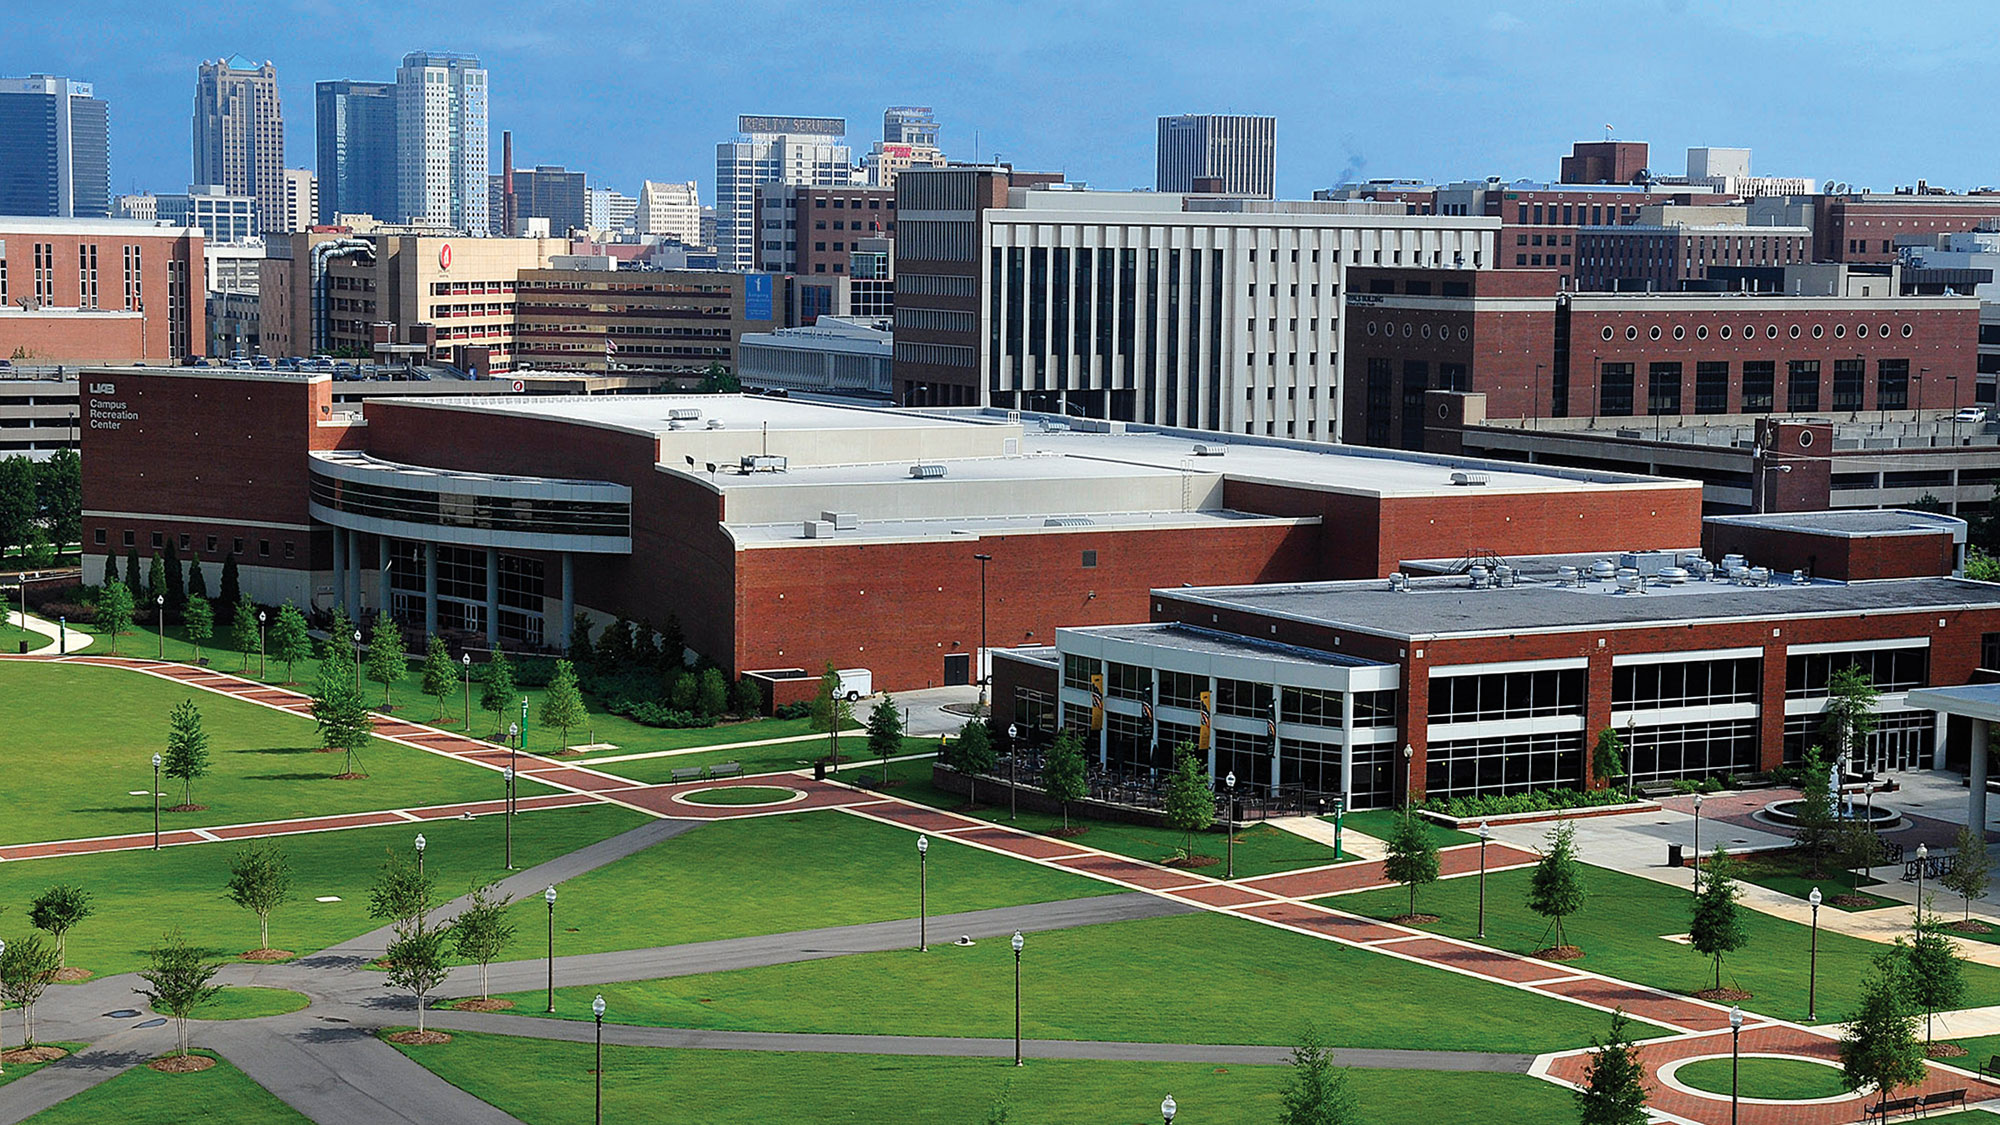 10 Things You Will Never Hear At the University Of Alabama